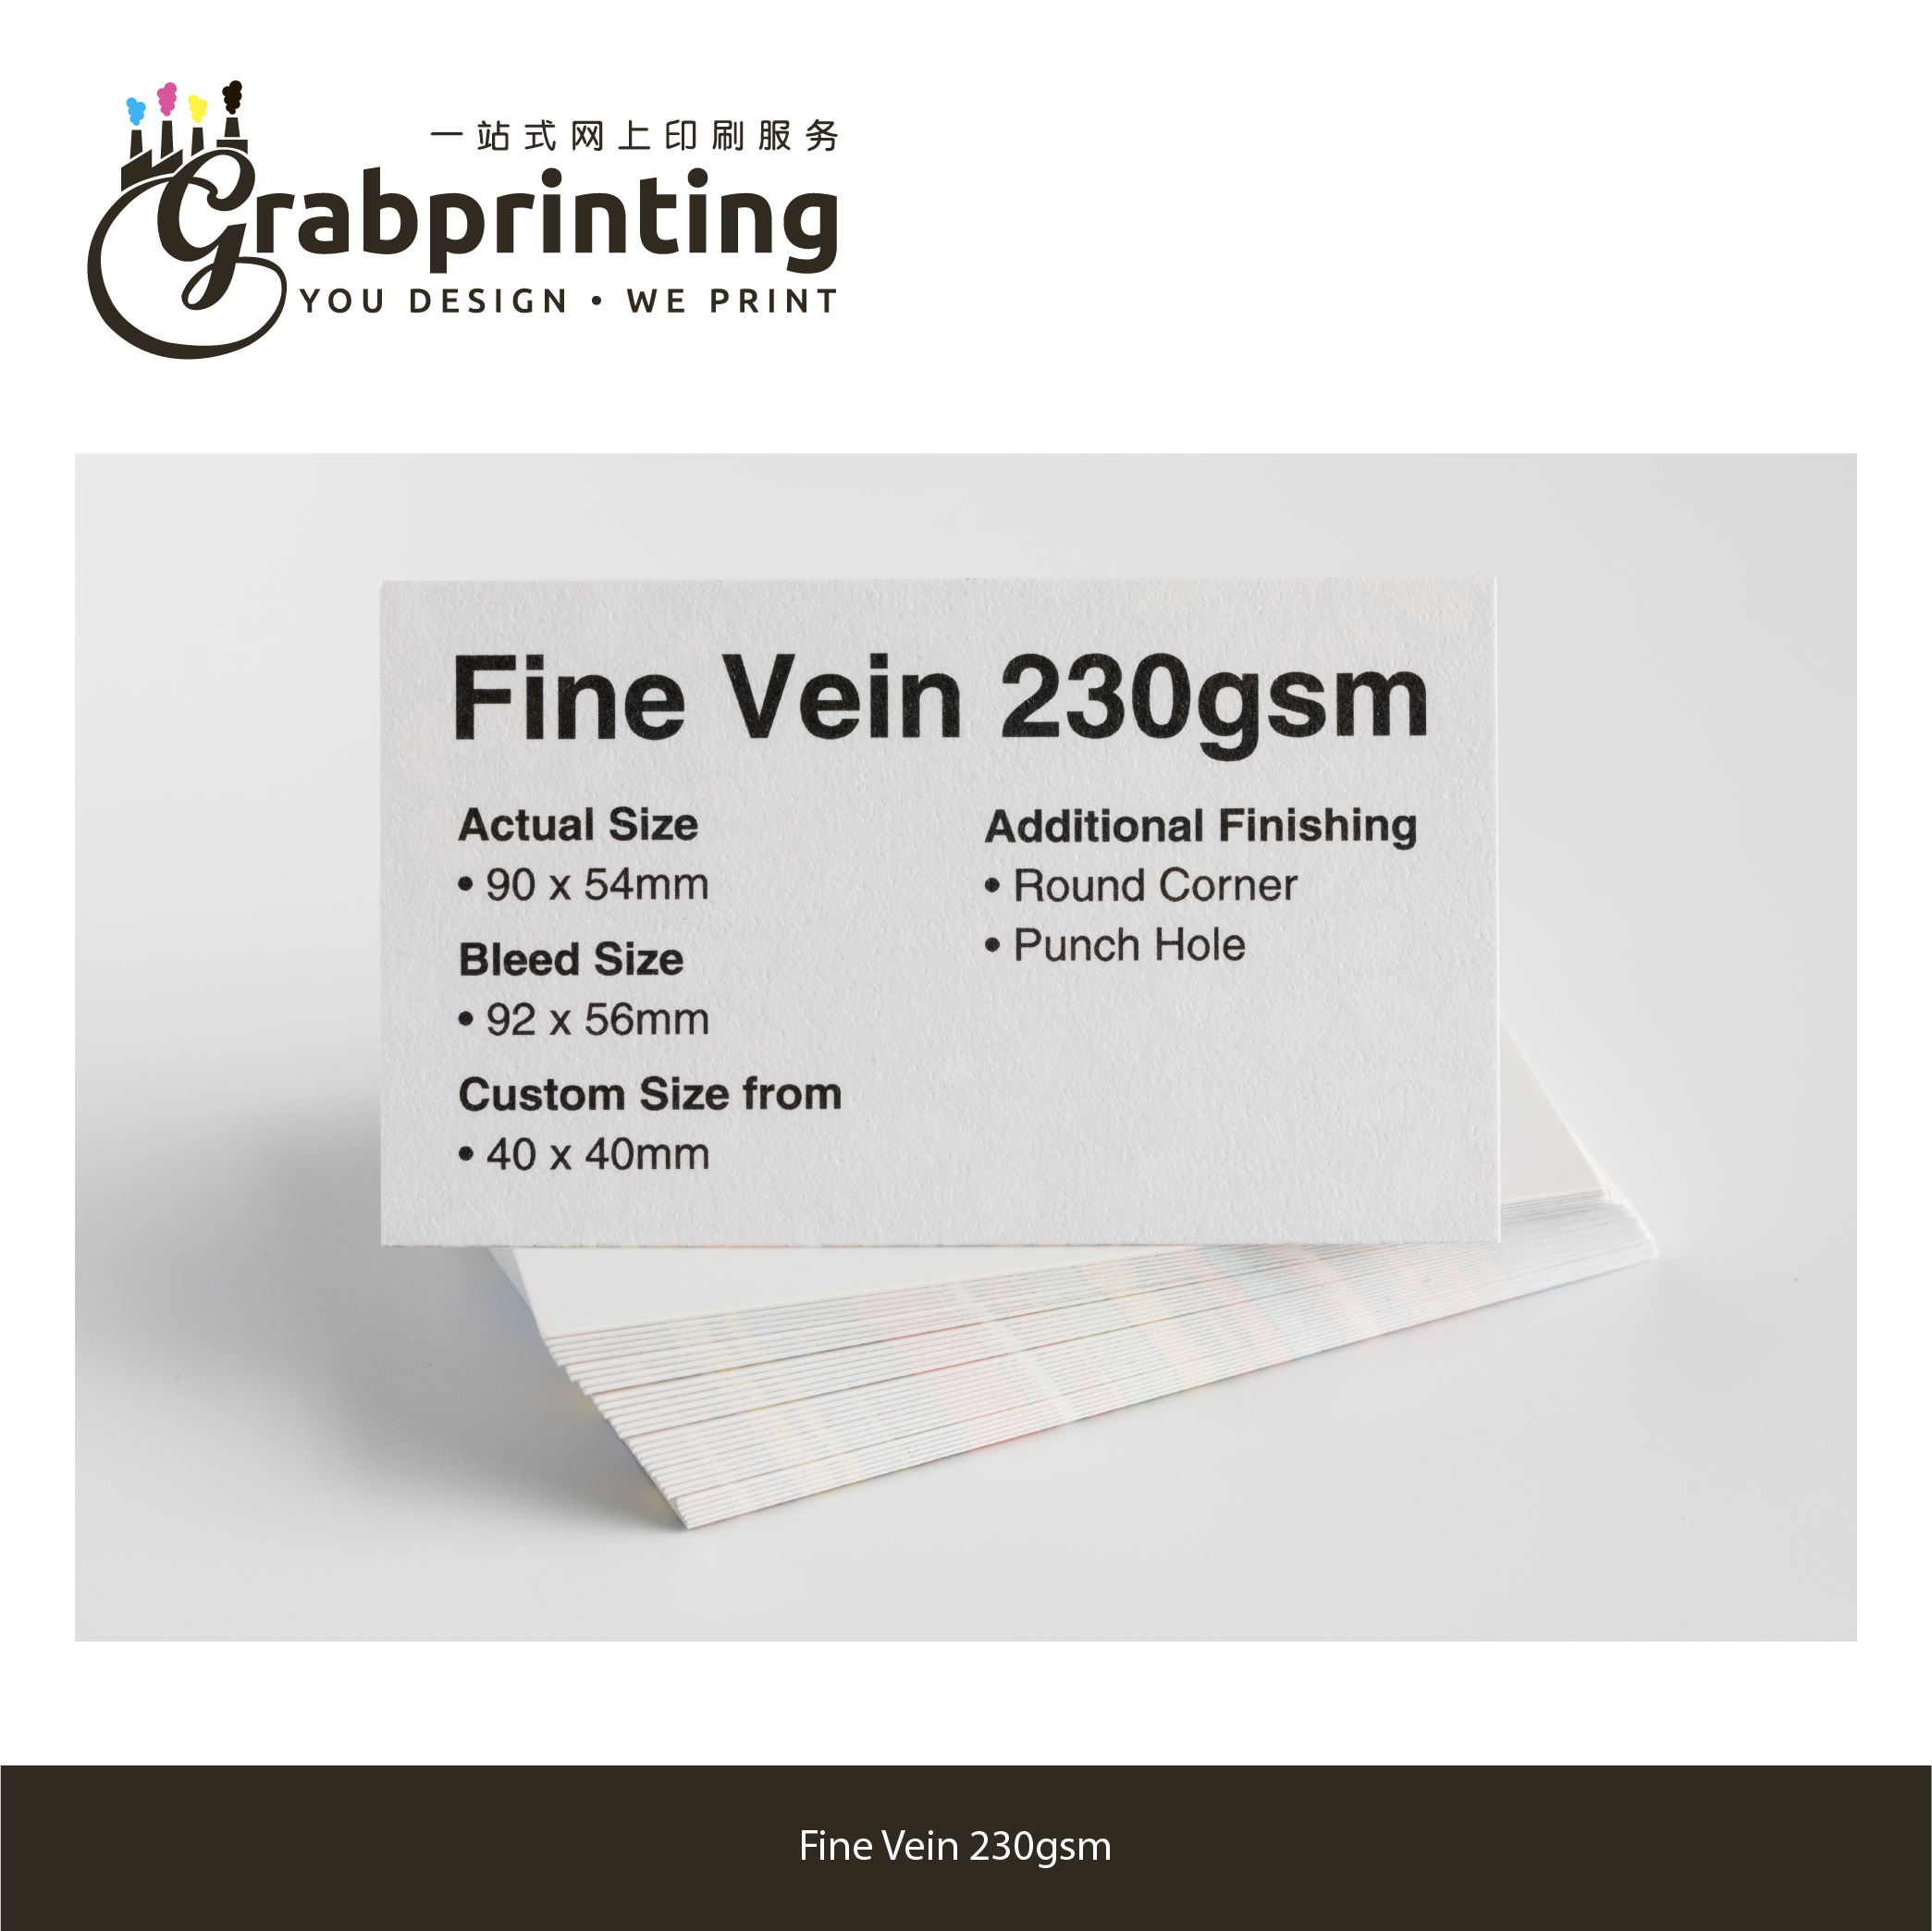 name cards Name Card (23 materials to choose from) grabprinting 36 Fine Vein 230gsm 501px 501px